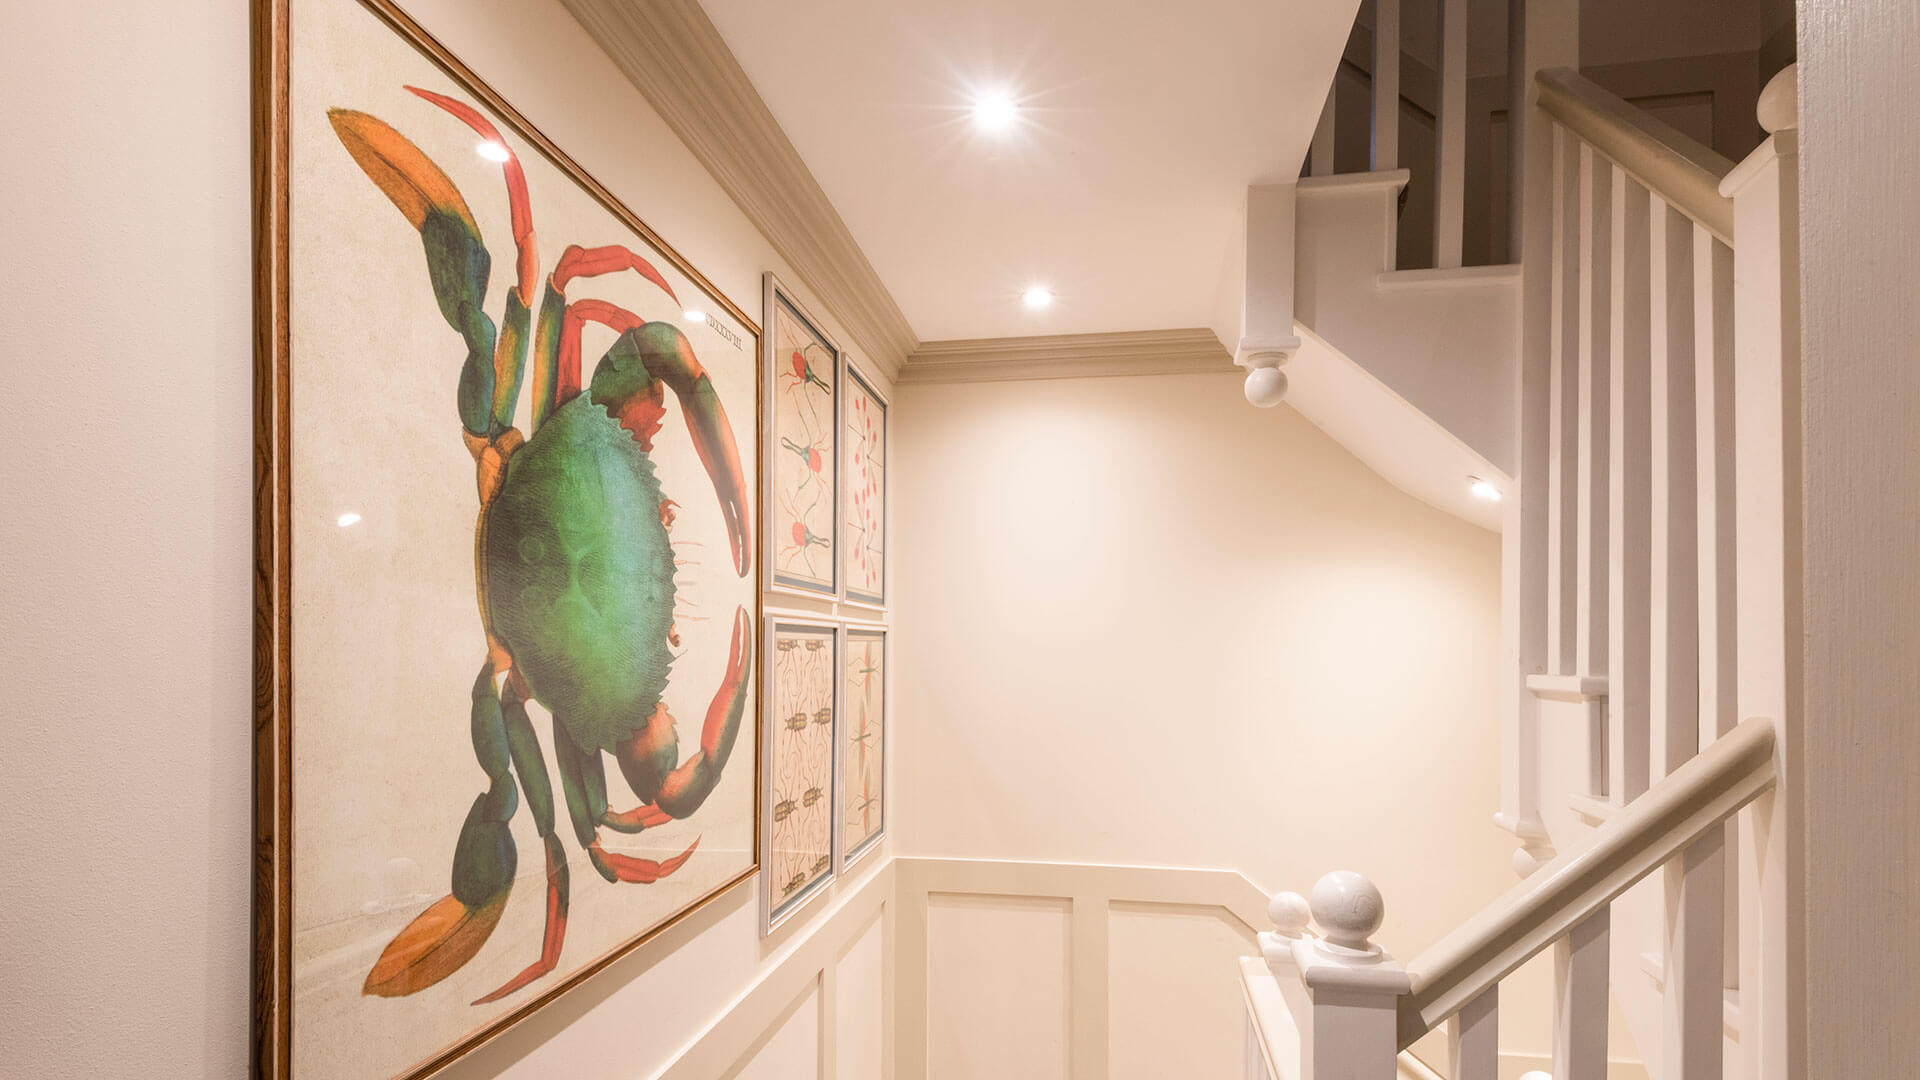 Redevlopement of private house in Knightsbridge